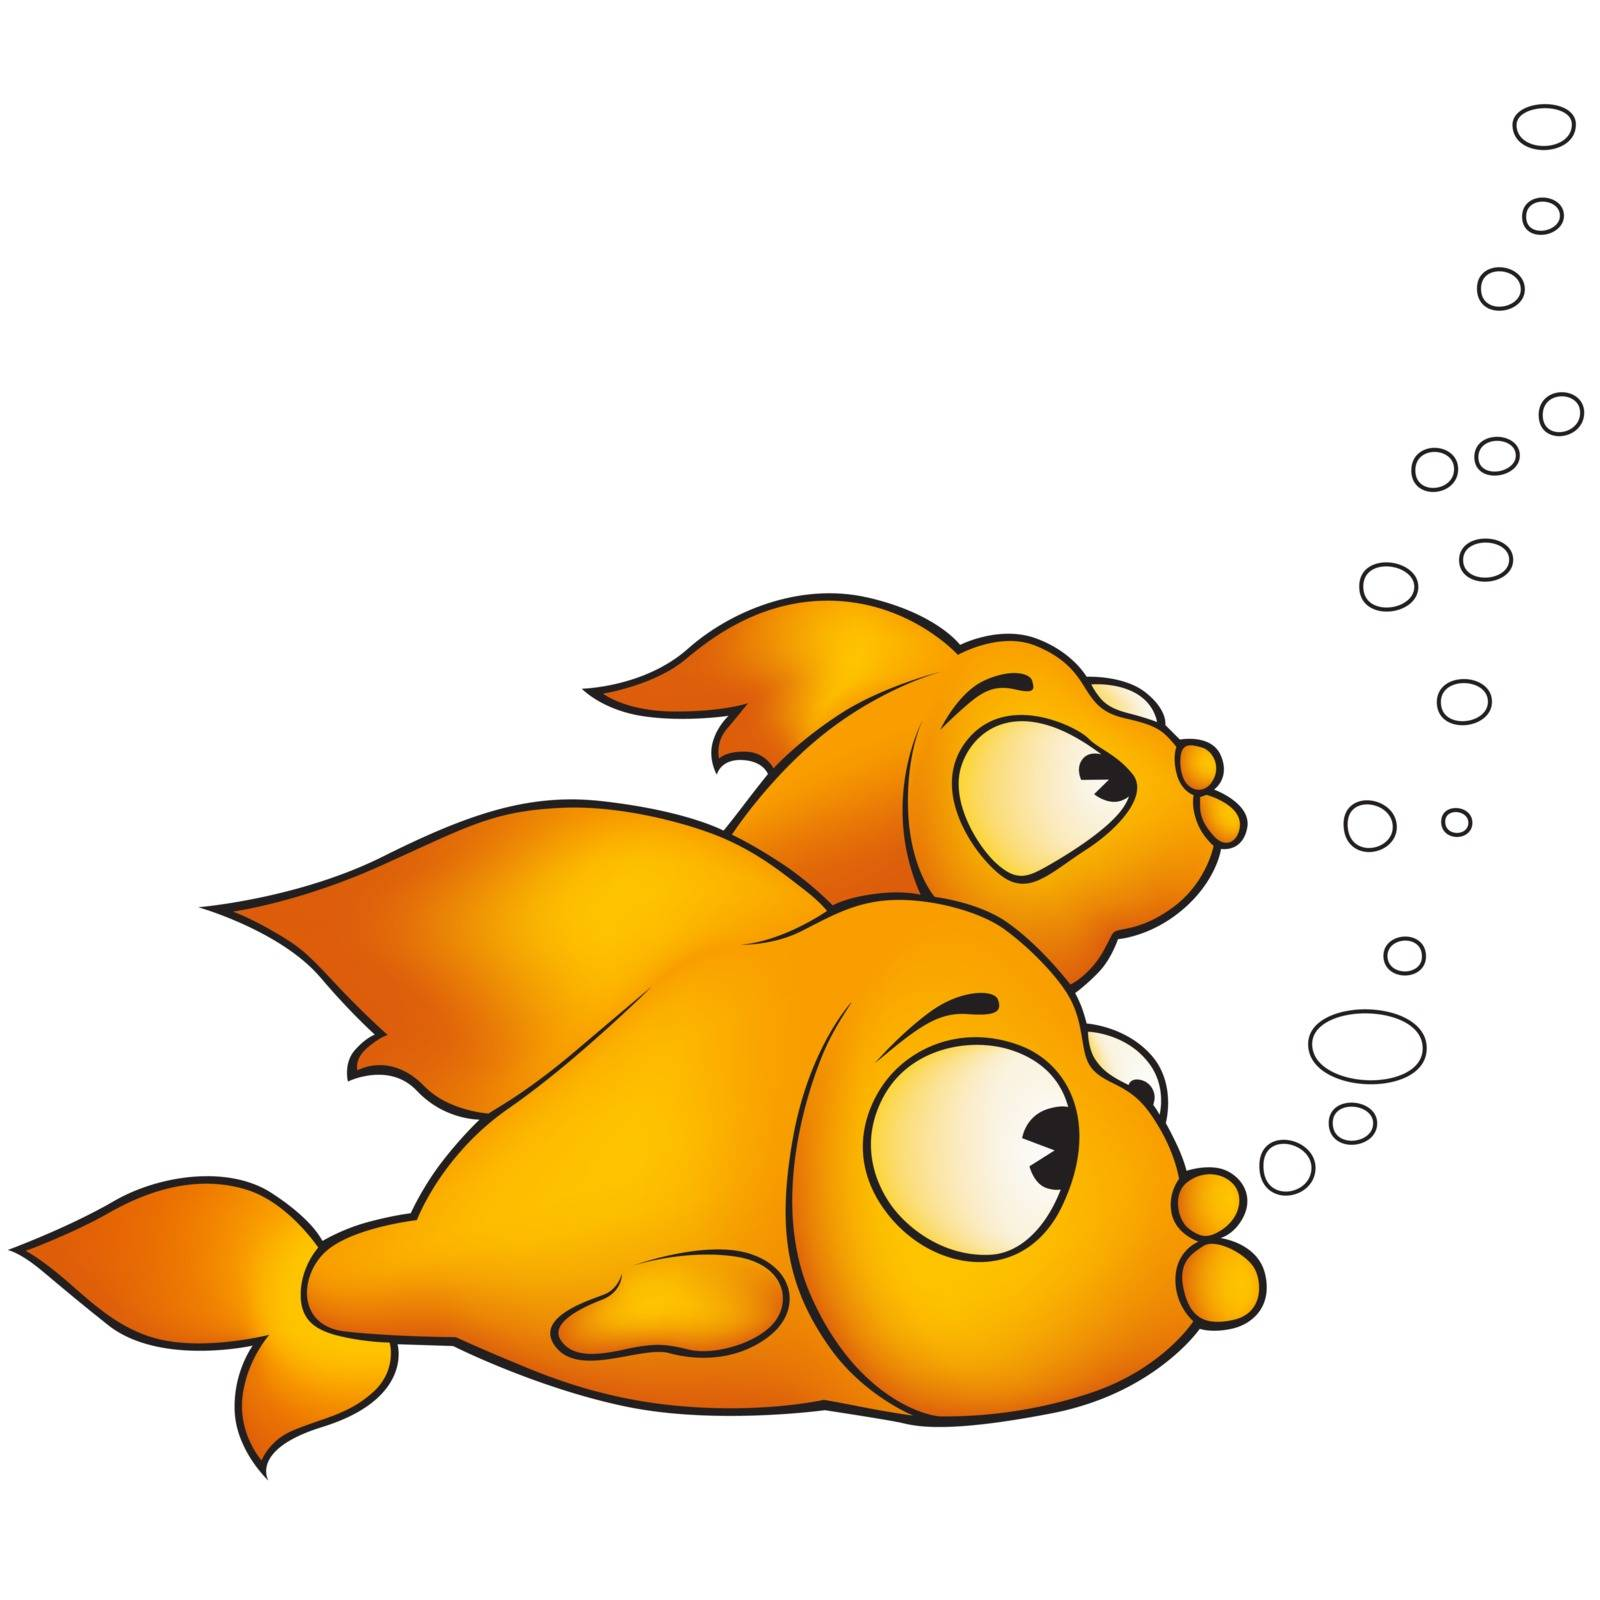 Two Golden Fish - Colored Cartoon Illustration, Vector